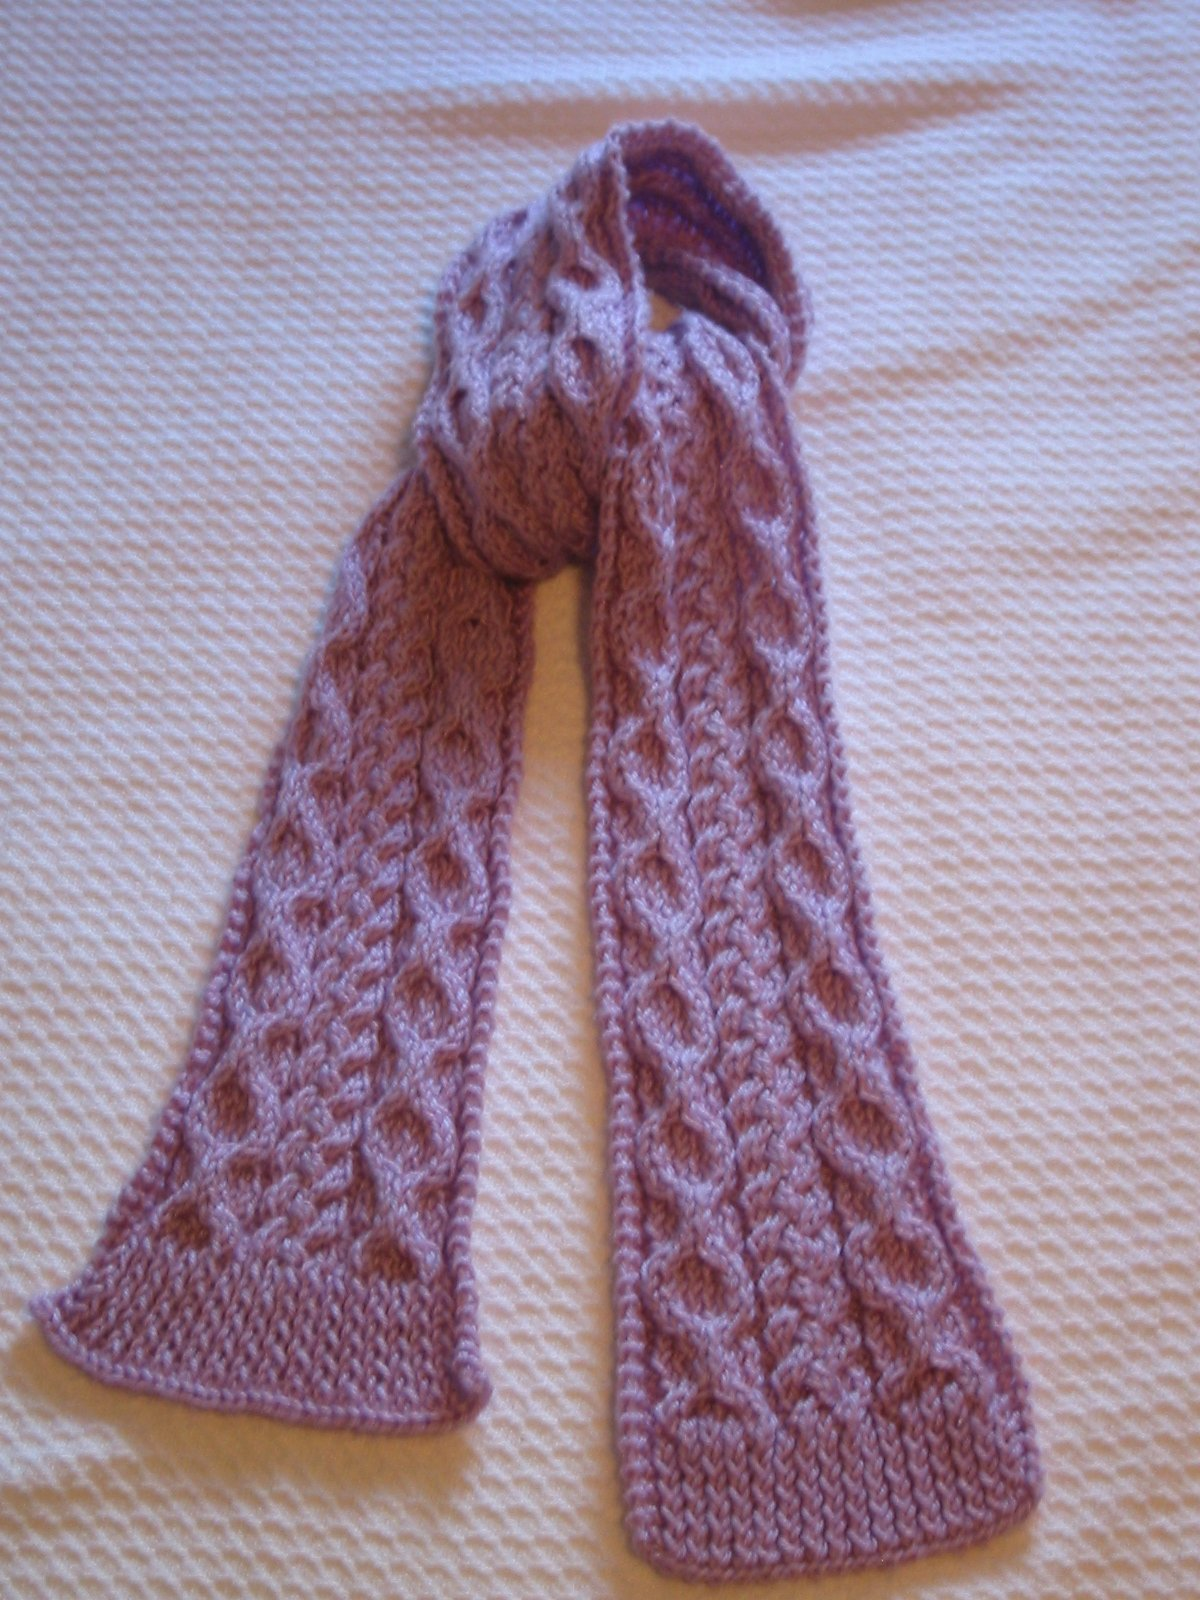 Scarf Patterns : Scarf with Honeycombs and Cable Knitting Pattern Photo